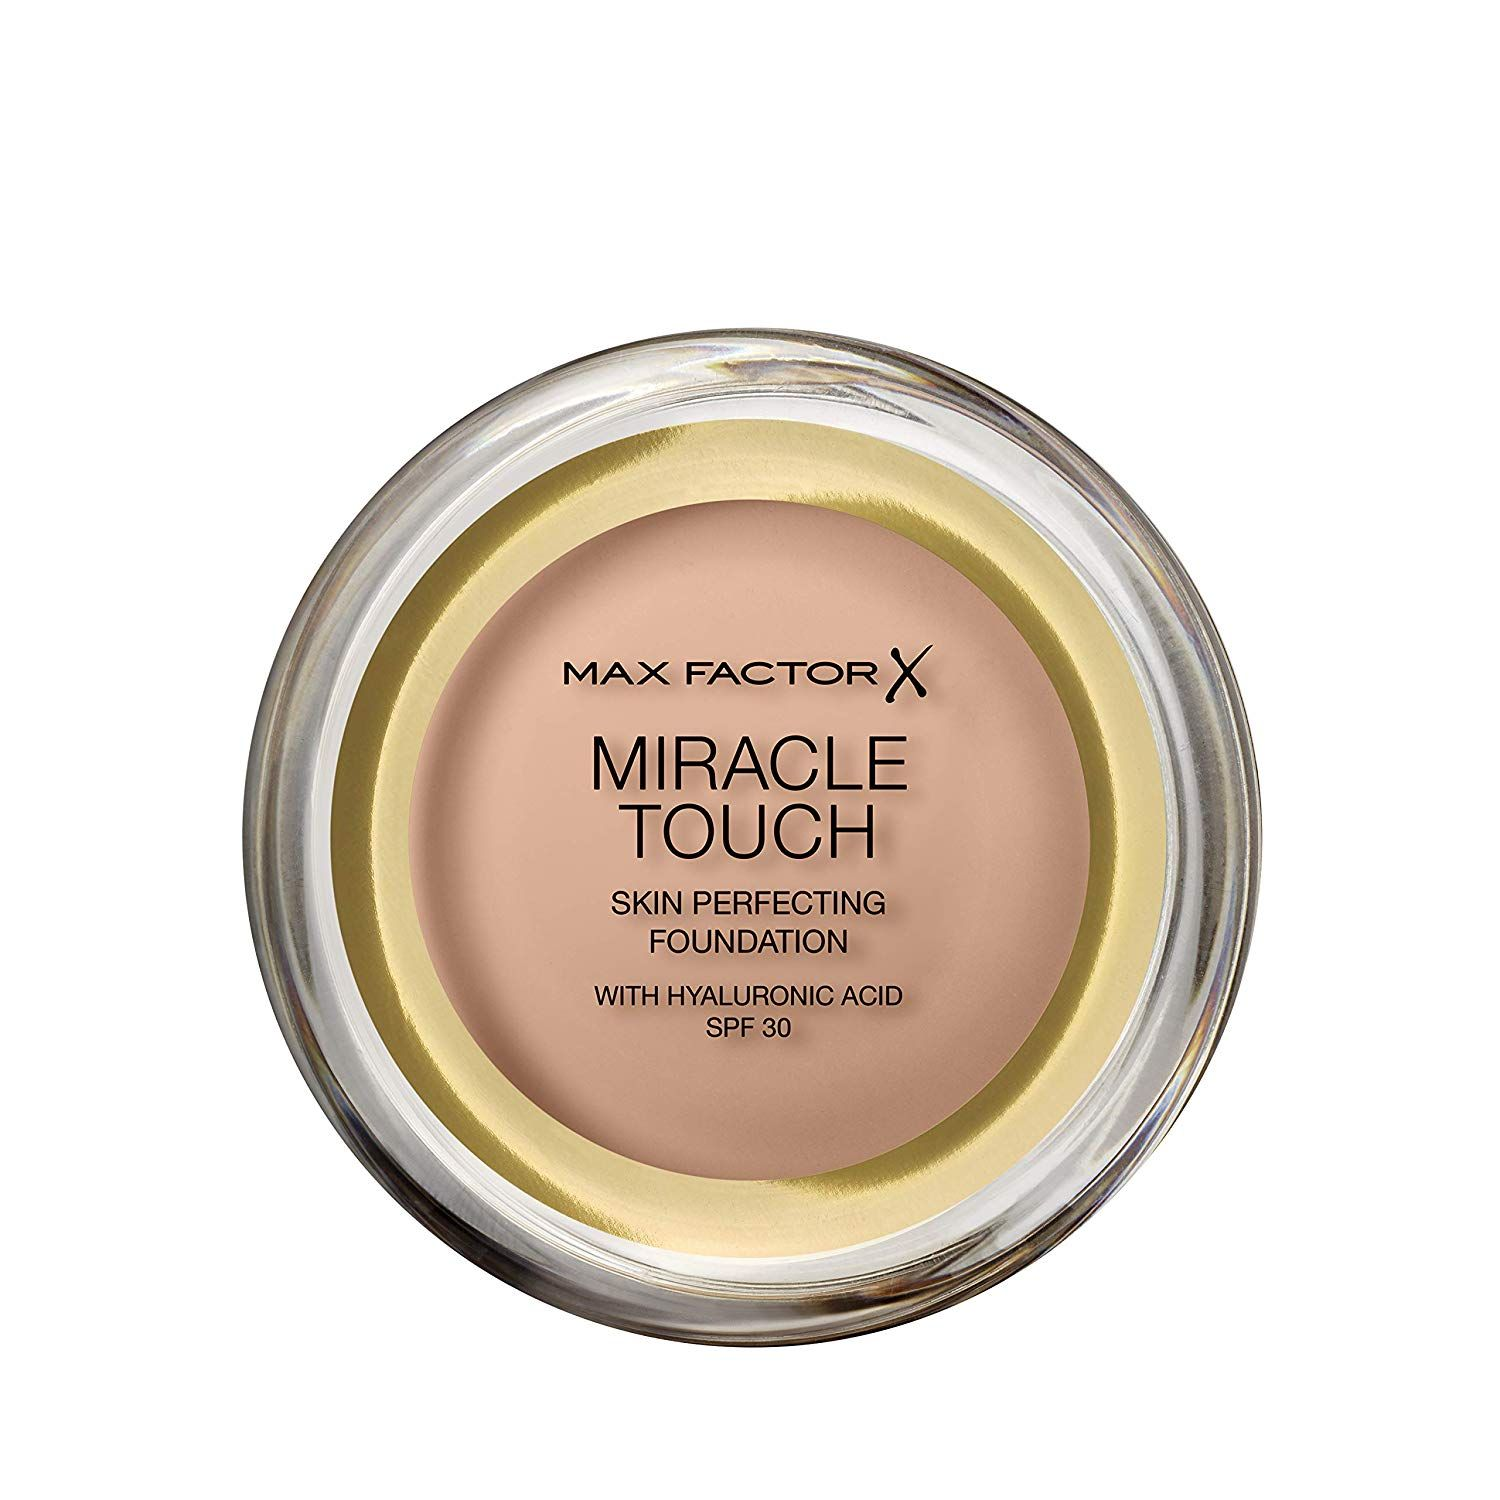 3 x Max Factor Miracle Touch Skin Perfecting Foundation SPF30 - 45 Warm Almond